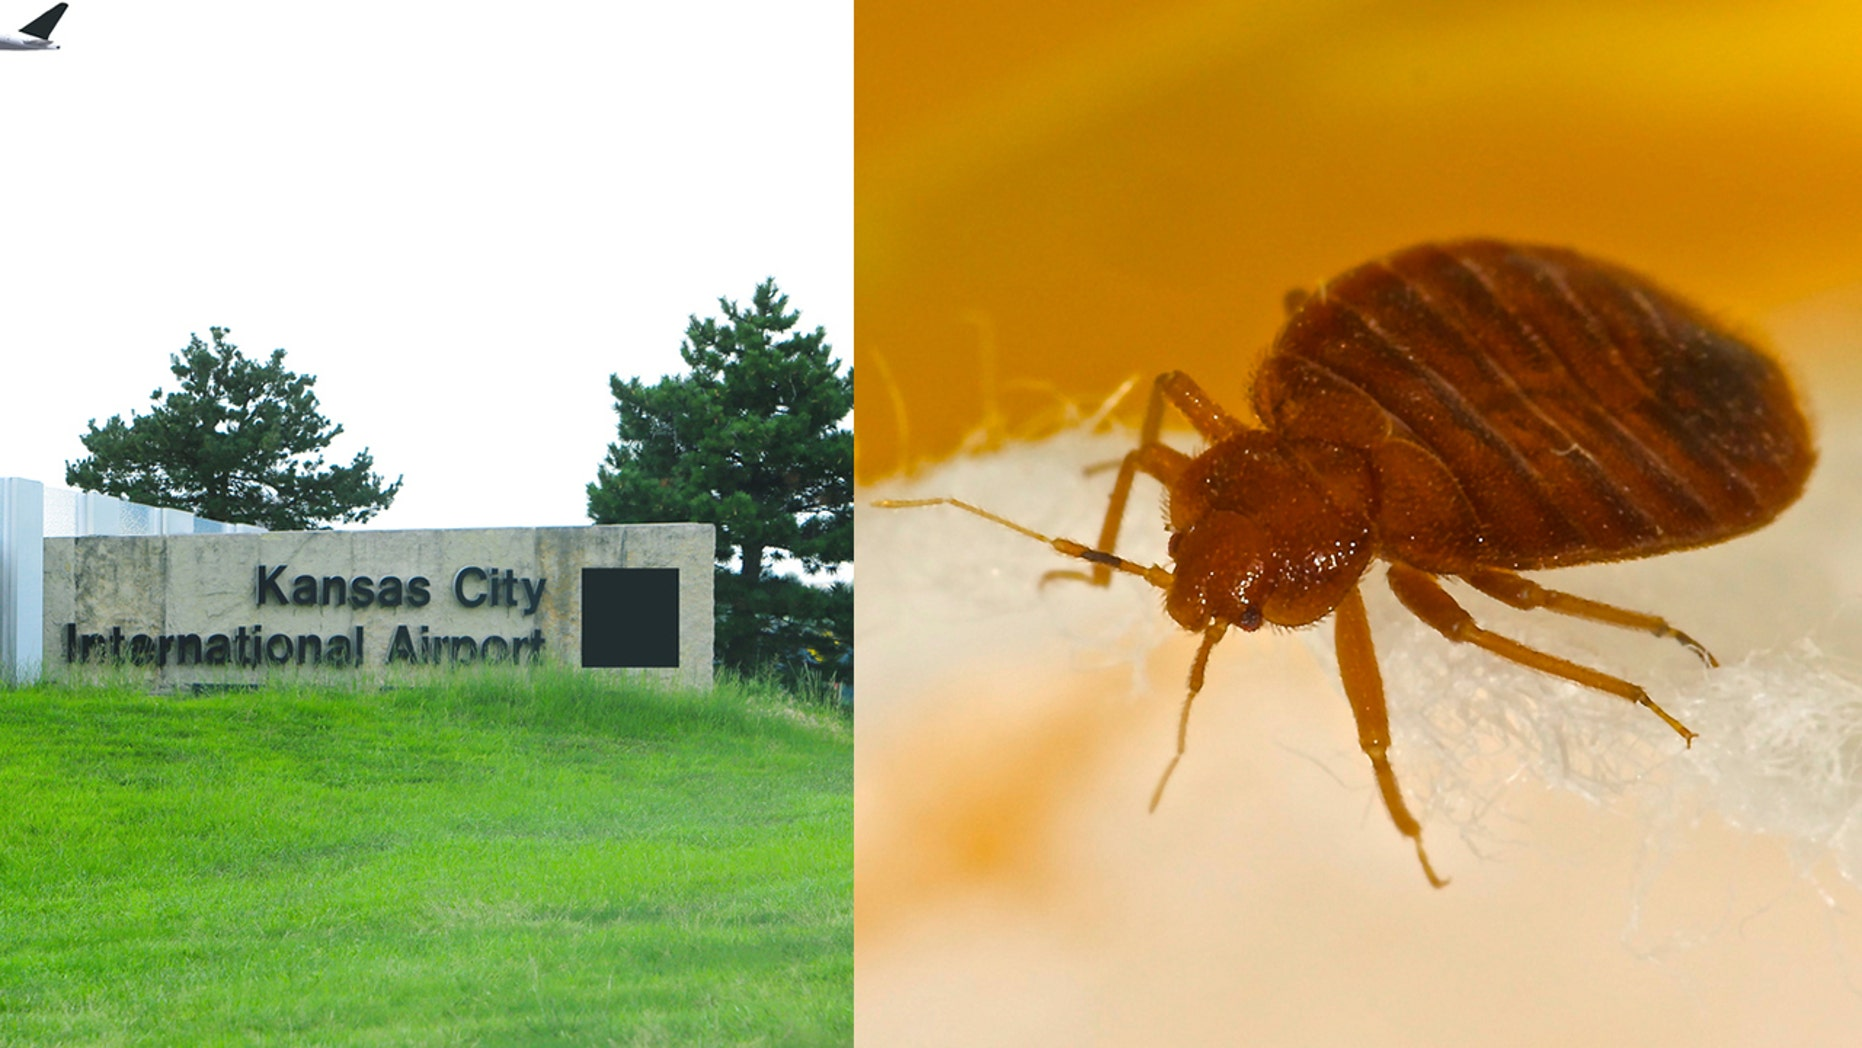 Airport staff found a live infestation of bed bugs on an upholstered chair in the Missouri airport.